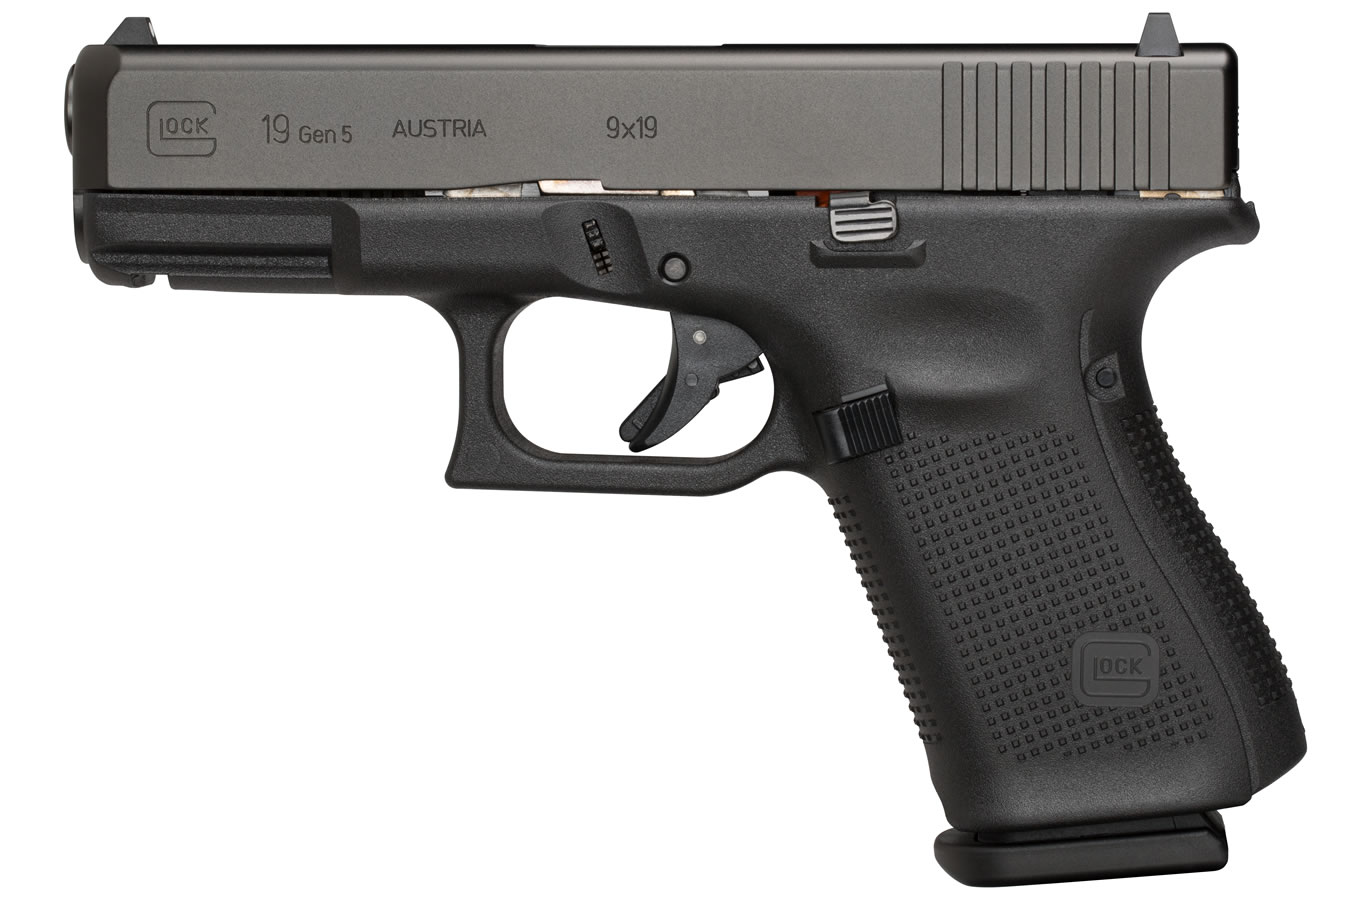 GLOCK 19 GEN5 9MM WITH FIXED SIGHTS (LE)